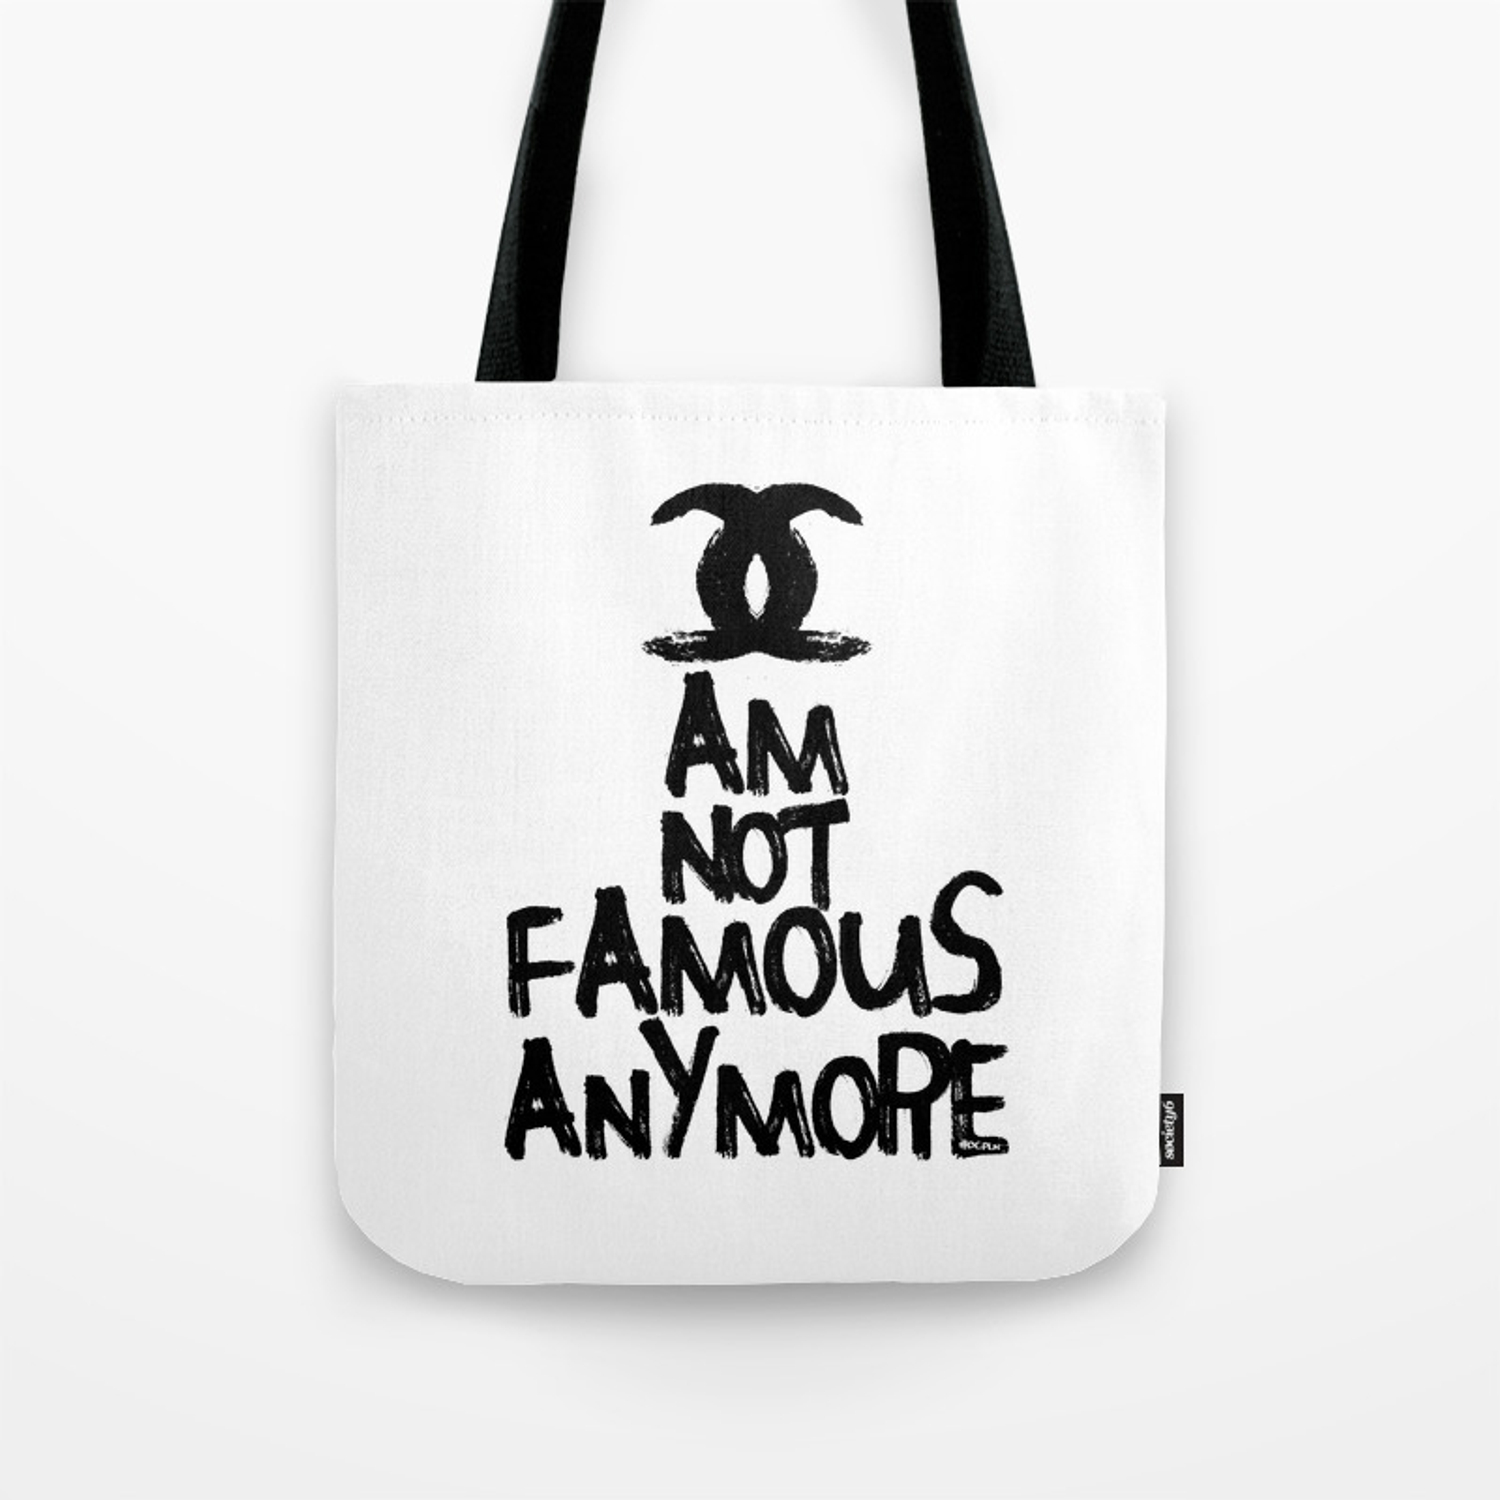 bee381ff1eb I am not famous anymore parody art Tote Bag